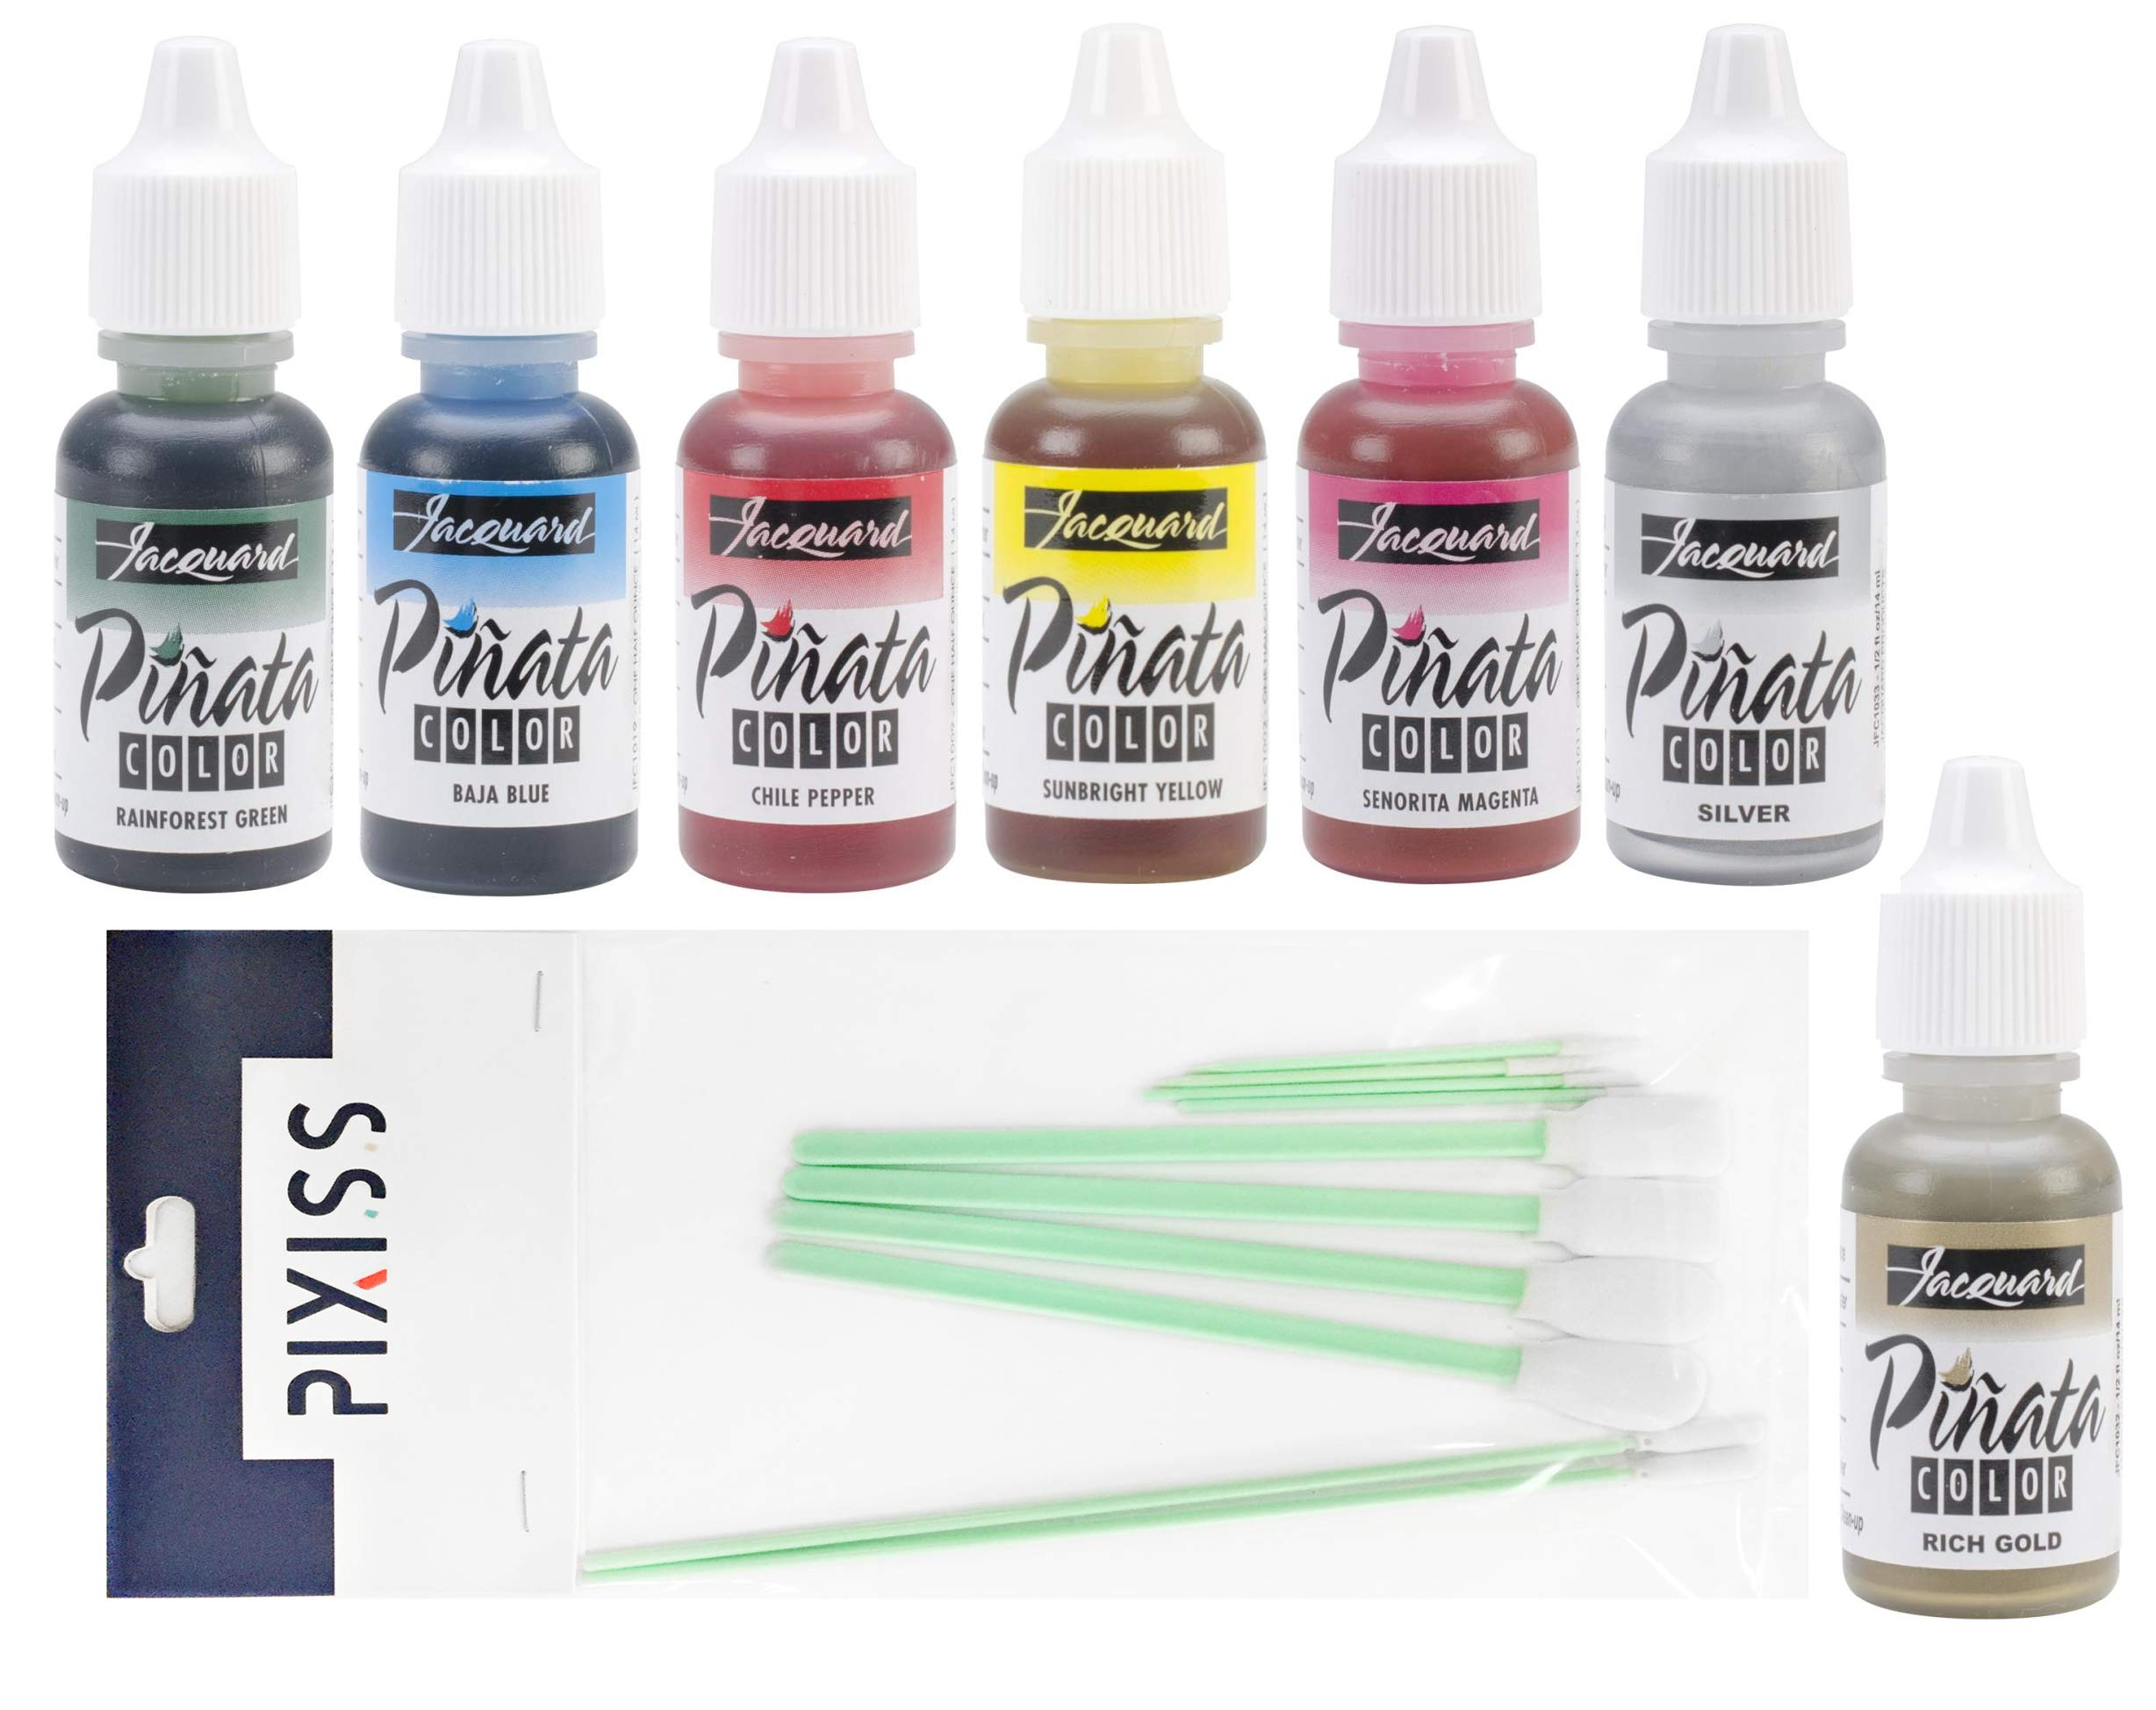 Jacquard Pinata Alcohol Inks 7 Pack Bundle, Silver, Rich Gold, Senorita Magenta, Sunbright Yellow, Chili Pepper, Baja Blue, Rainforest Green and 10X Pixiss Ink Blending Tools by GrandProducts